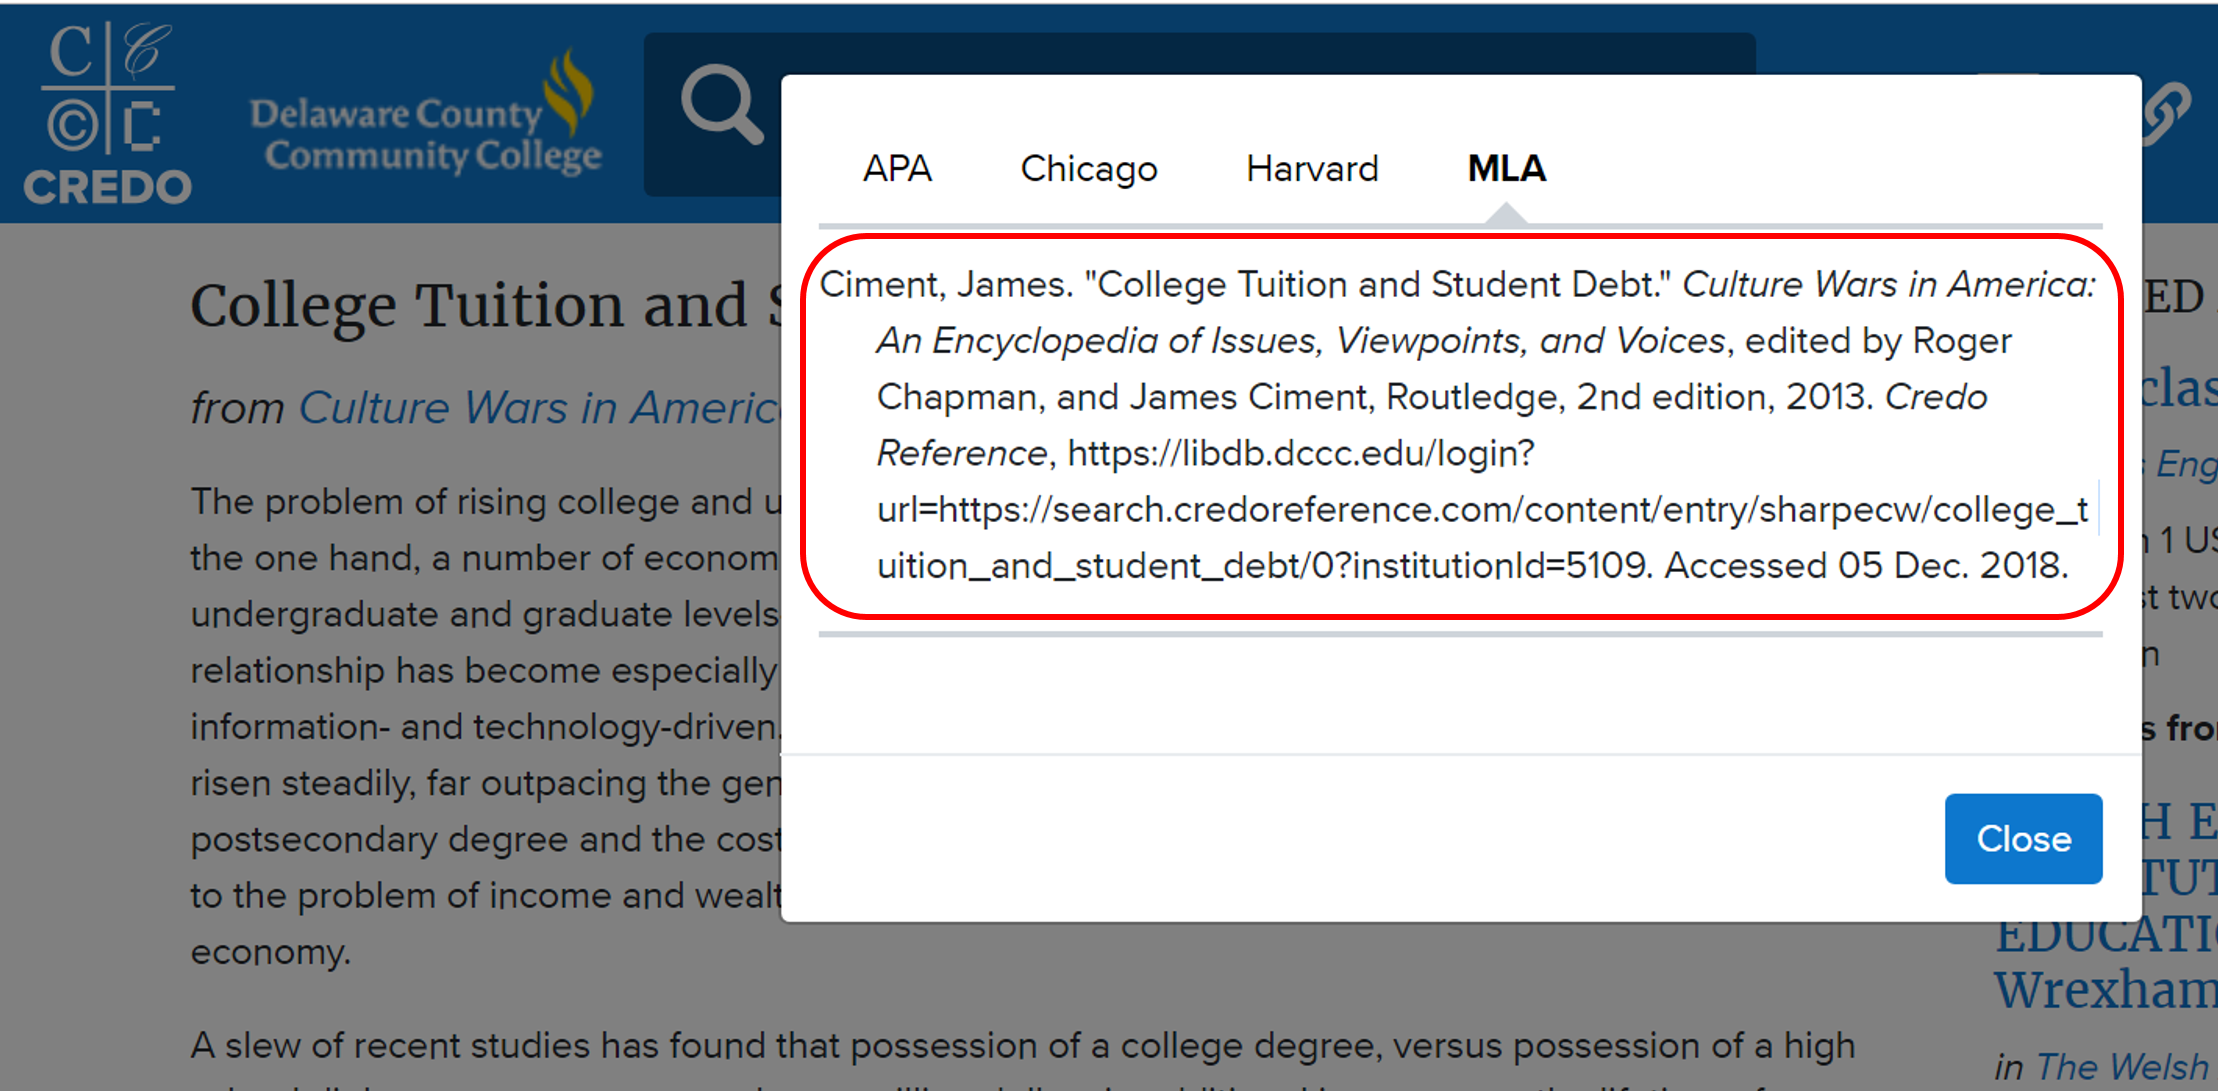 Highlight, copy, and paste the citation into your paper or presentation.